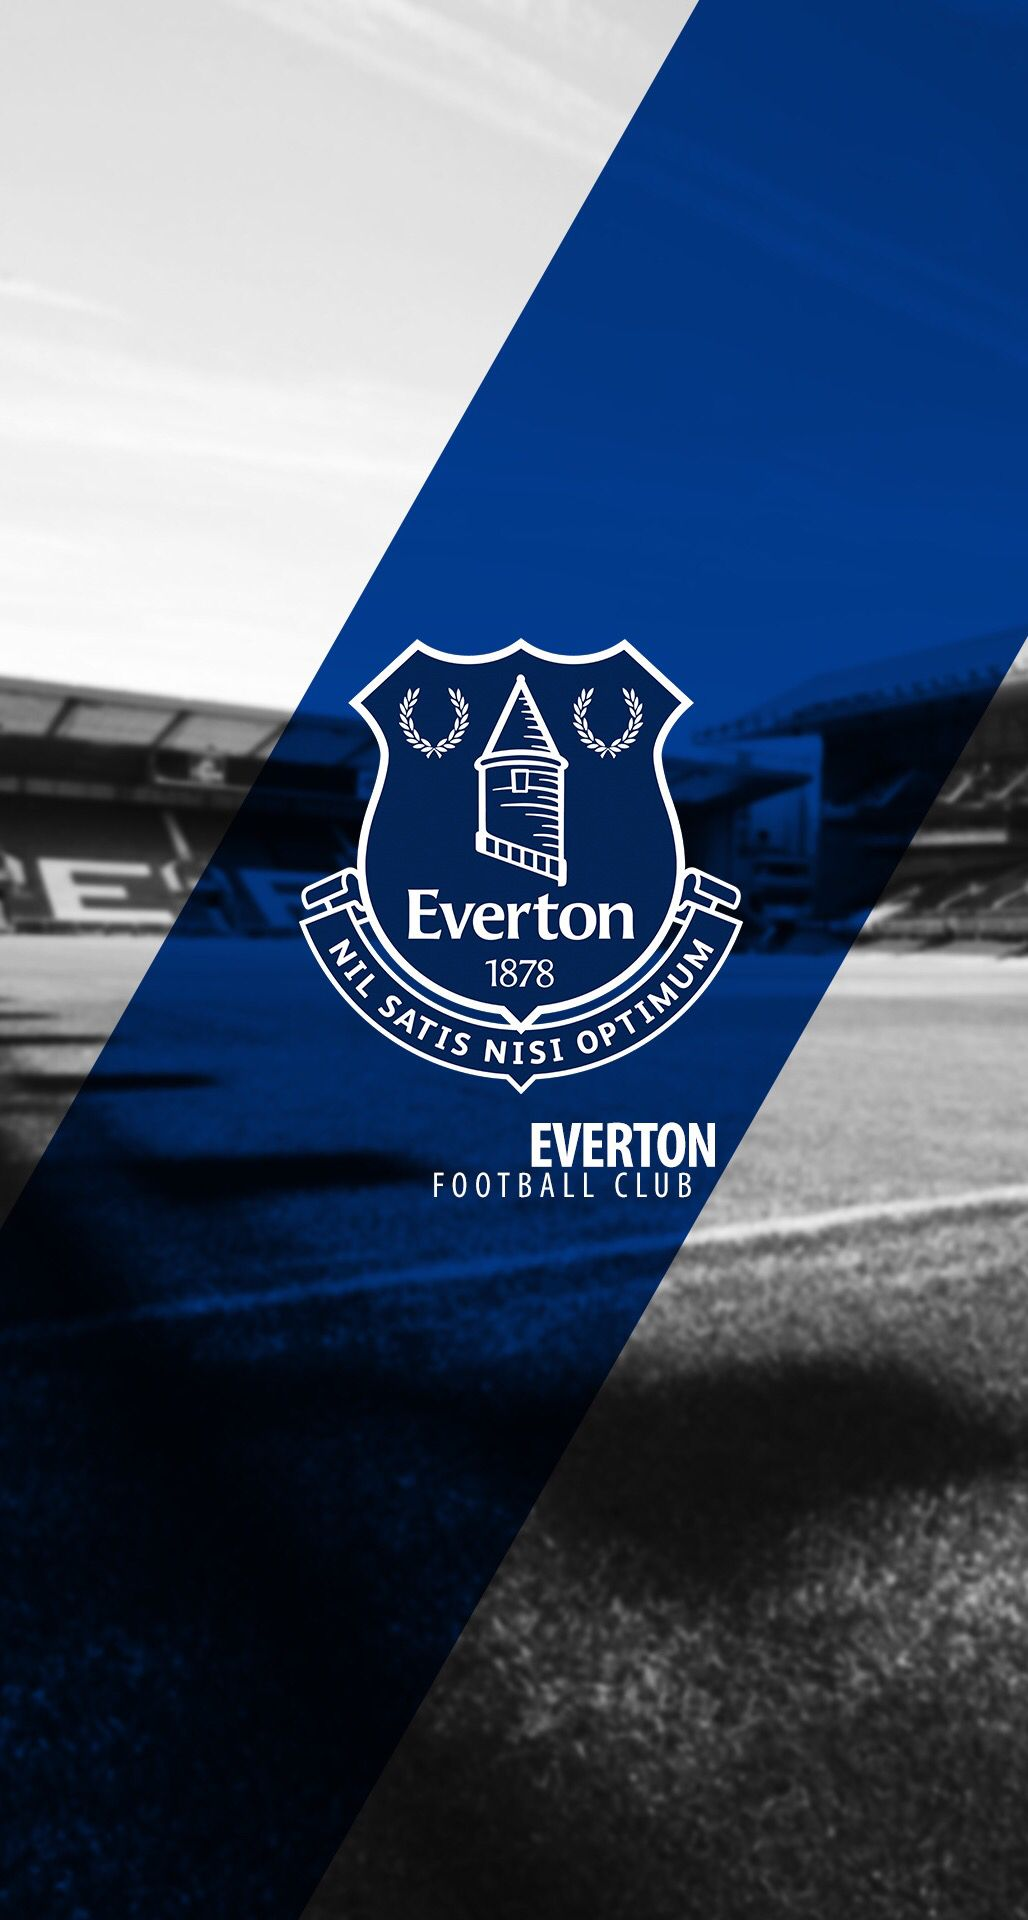 Everton FC Goodison Park Wallpaper HD Wallpapers Pinterest